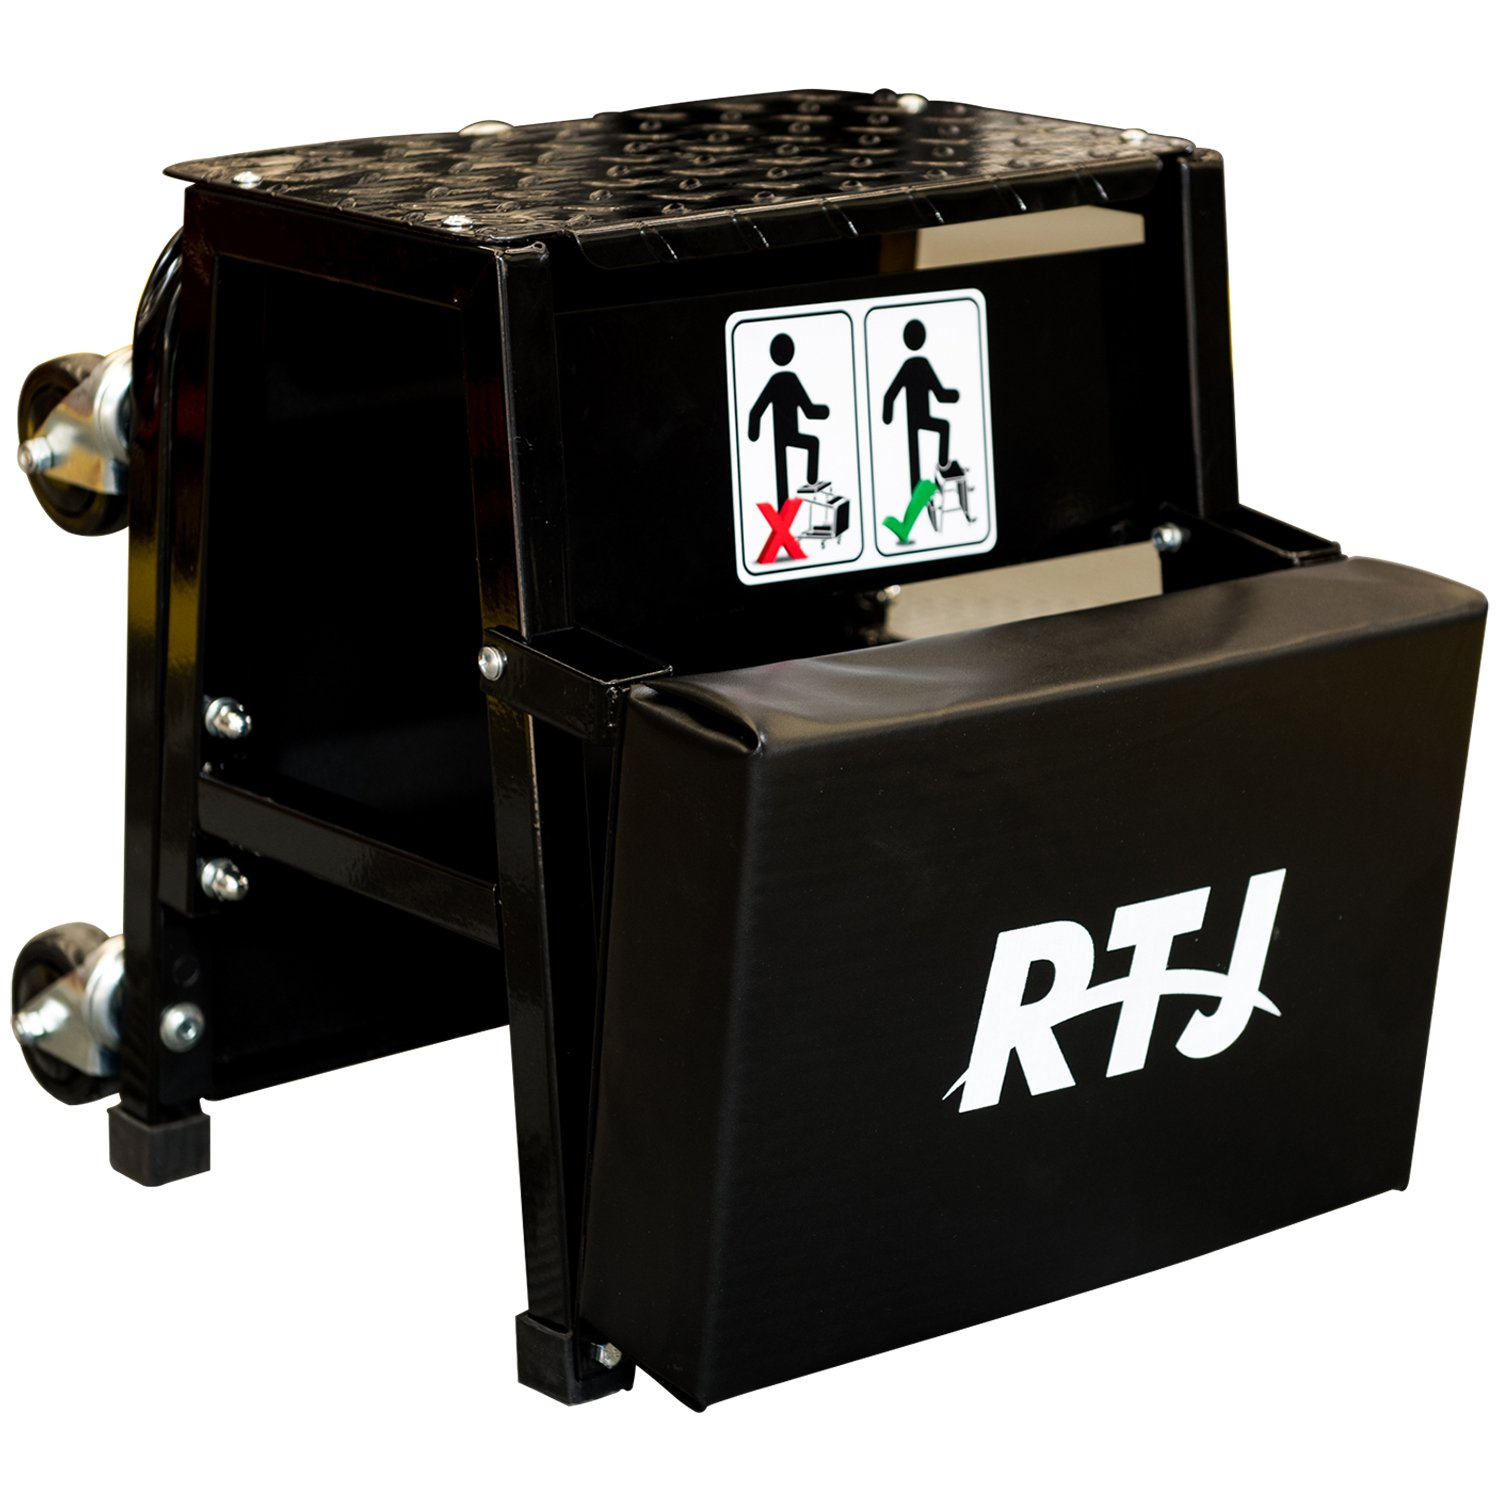 RTJ 400 lbs Capacity Mechanic Roller Seat and Stool Combo, Black by RTJ